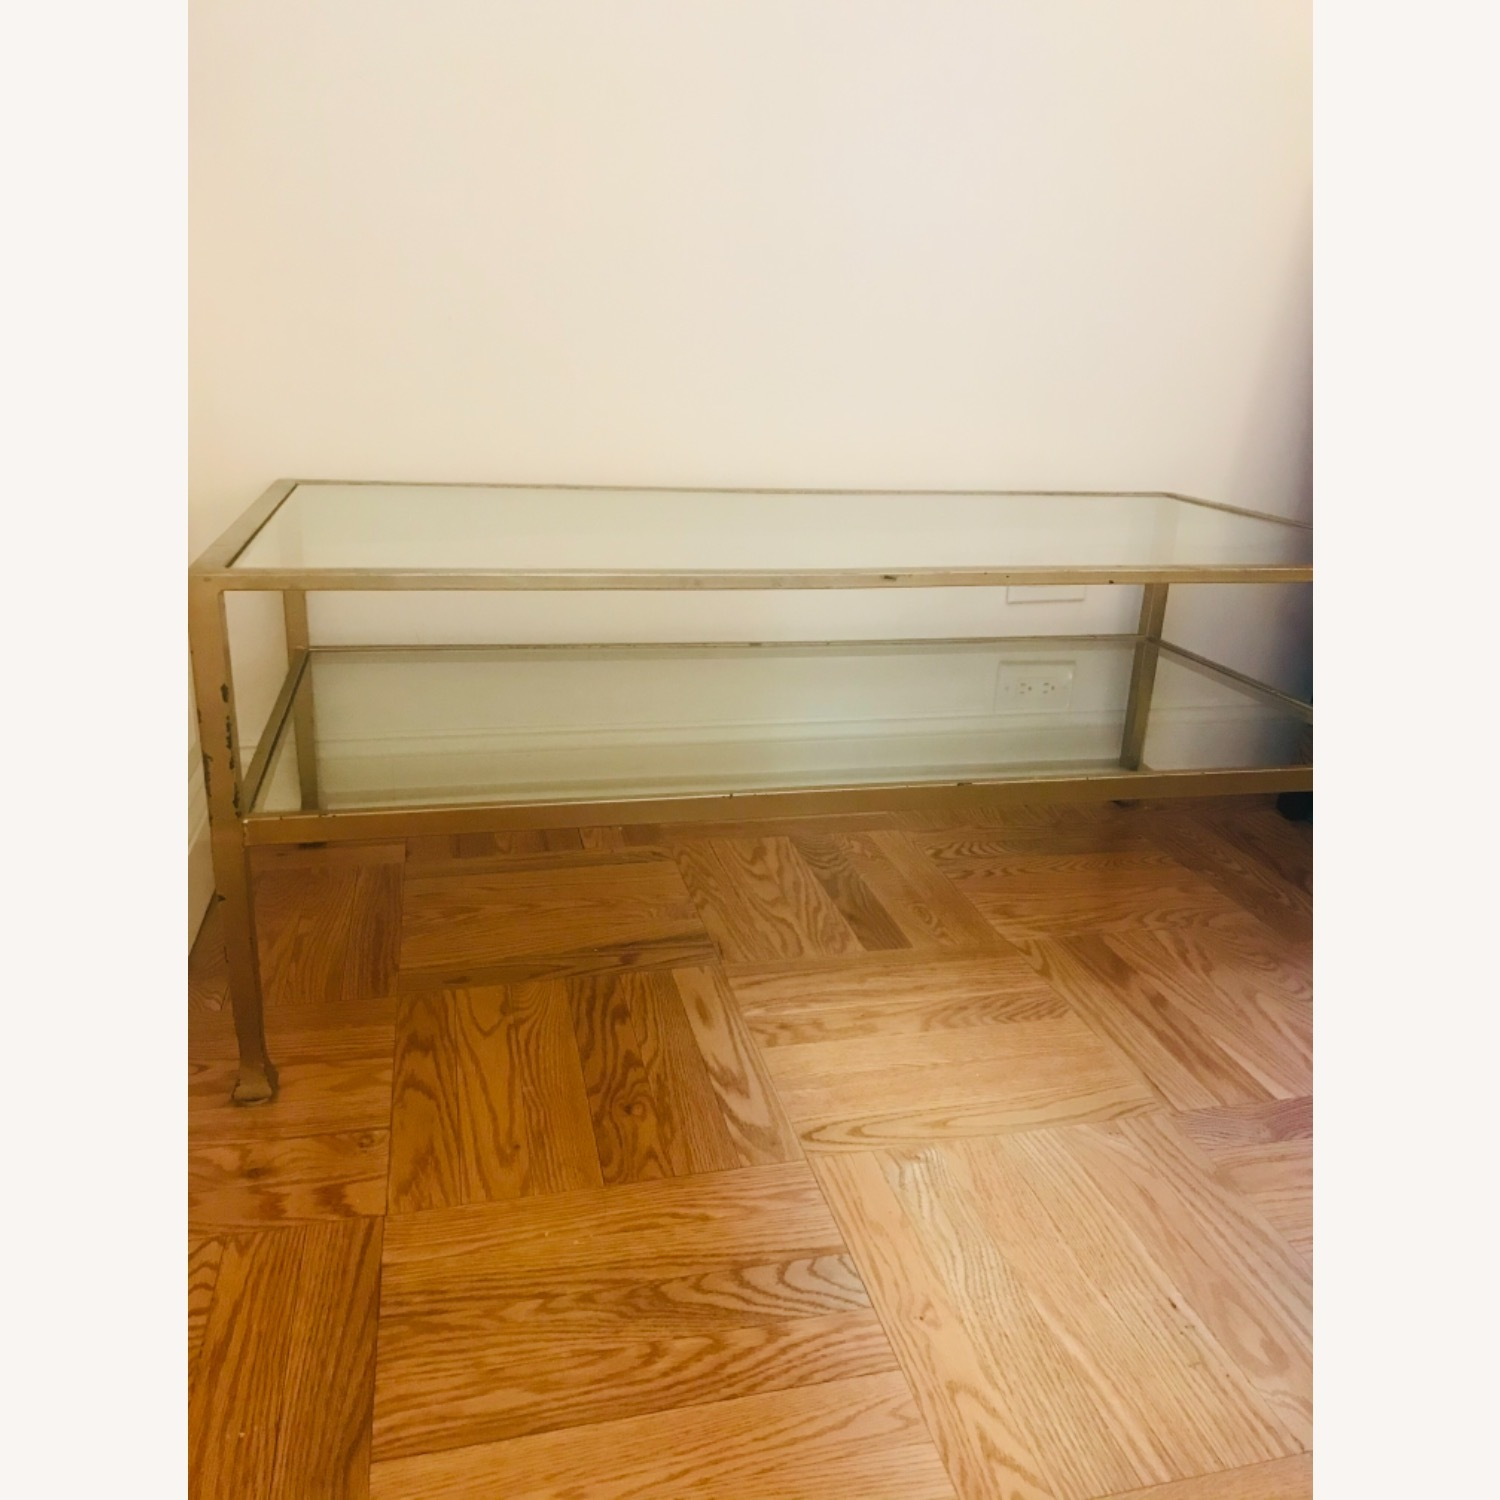 Crate & Barrel Antique Gold Glass and Metal Table - image-2